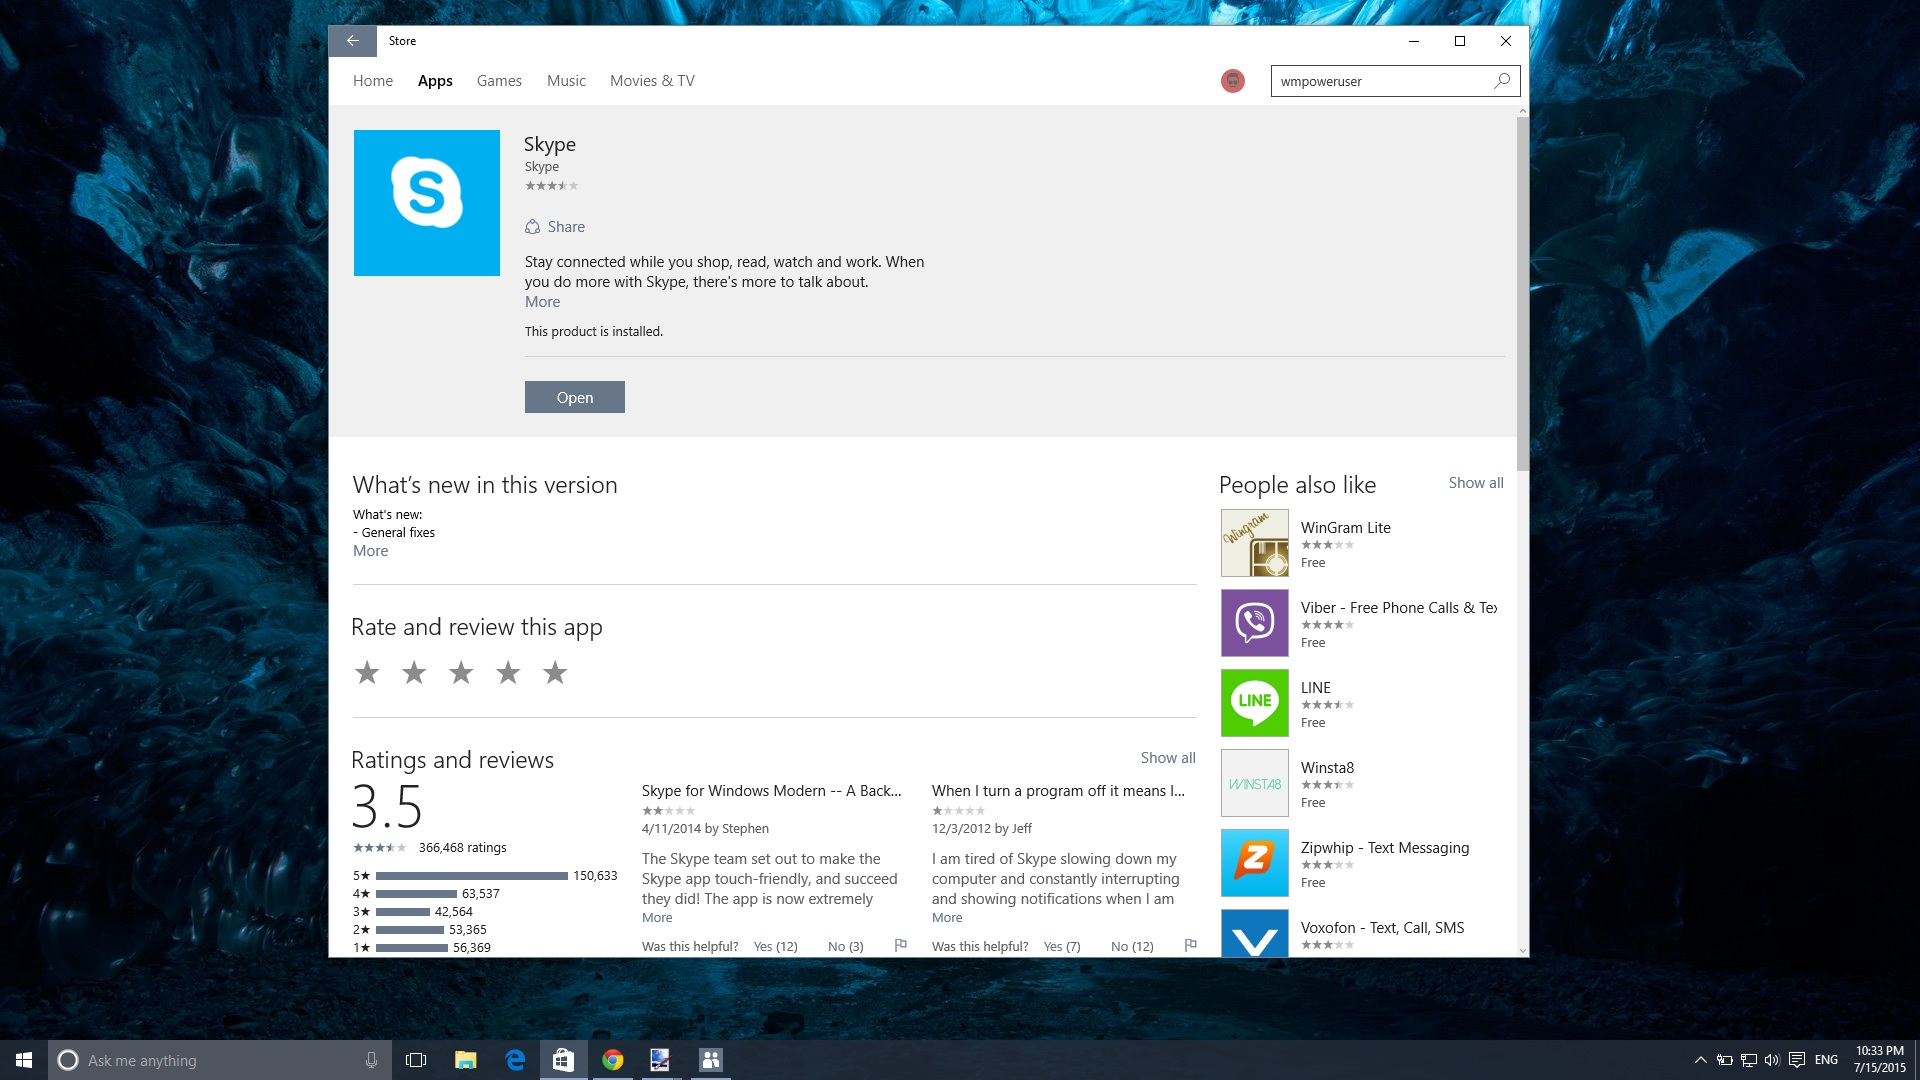 Hands-on with Windows 10 Build 10240 (RTM) 19